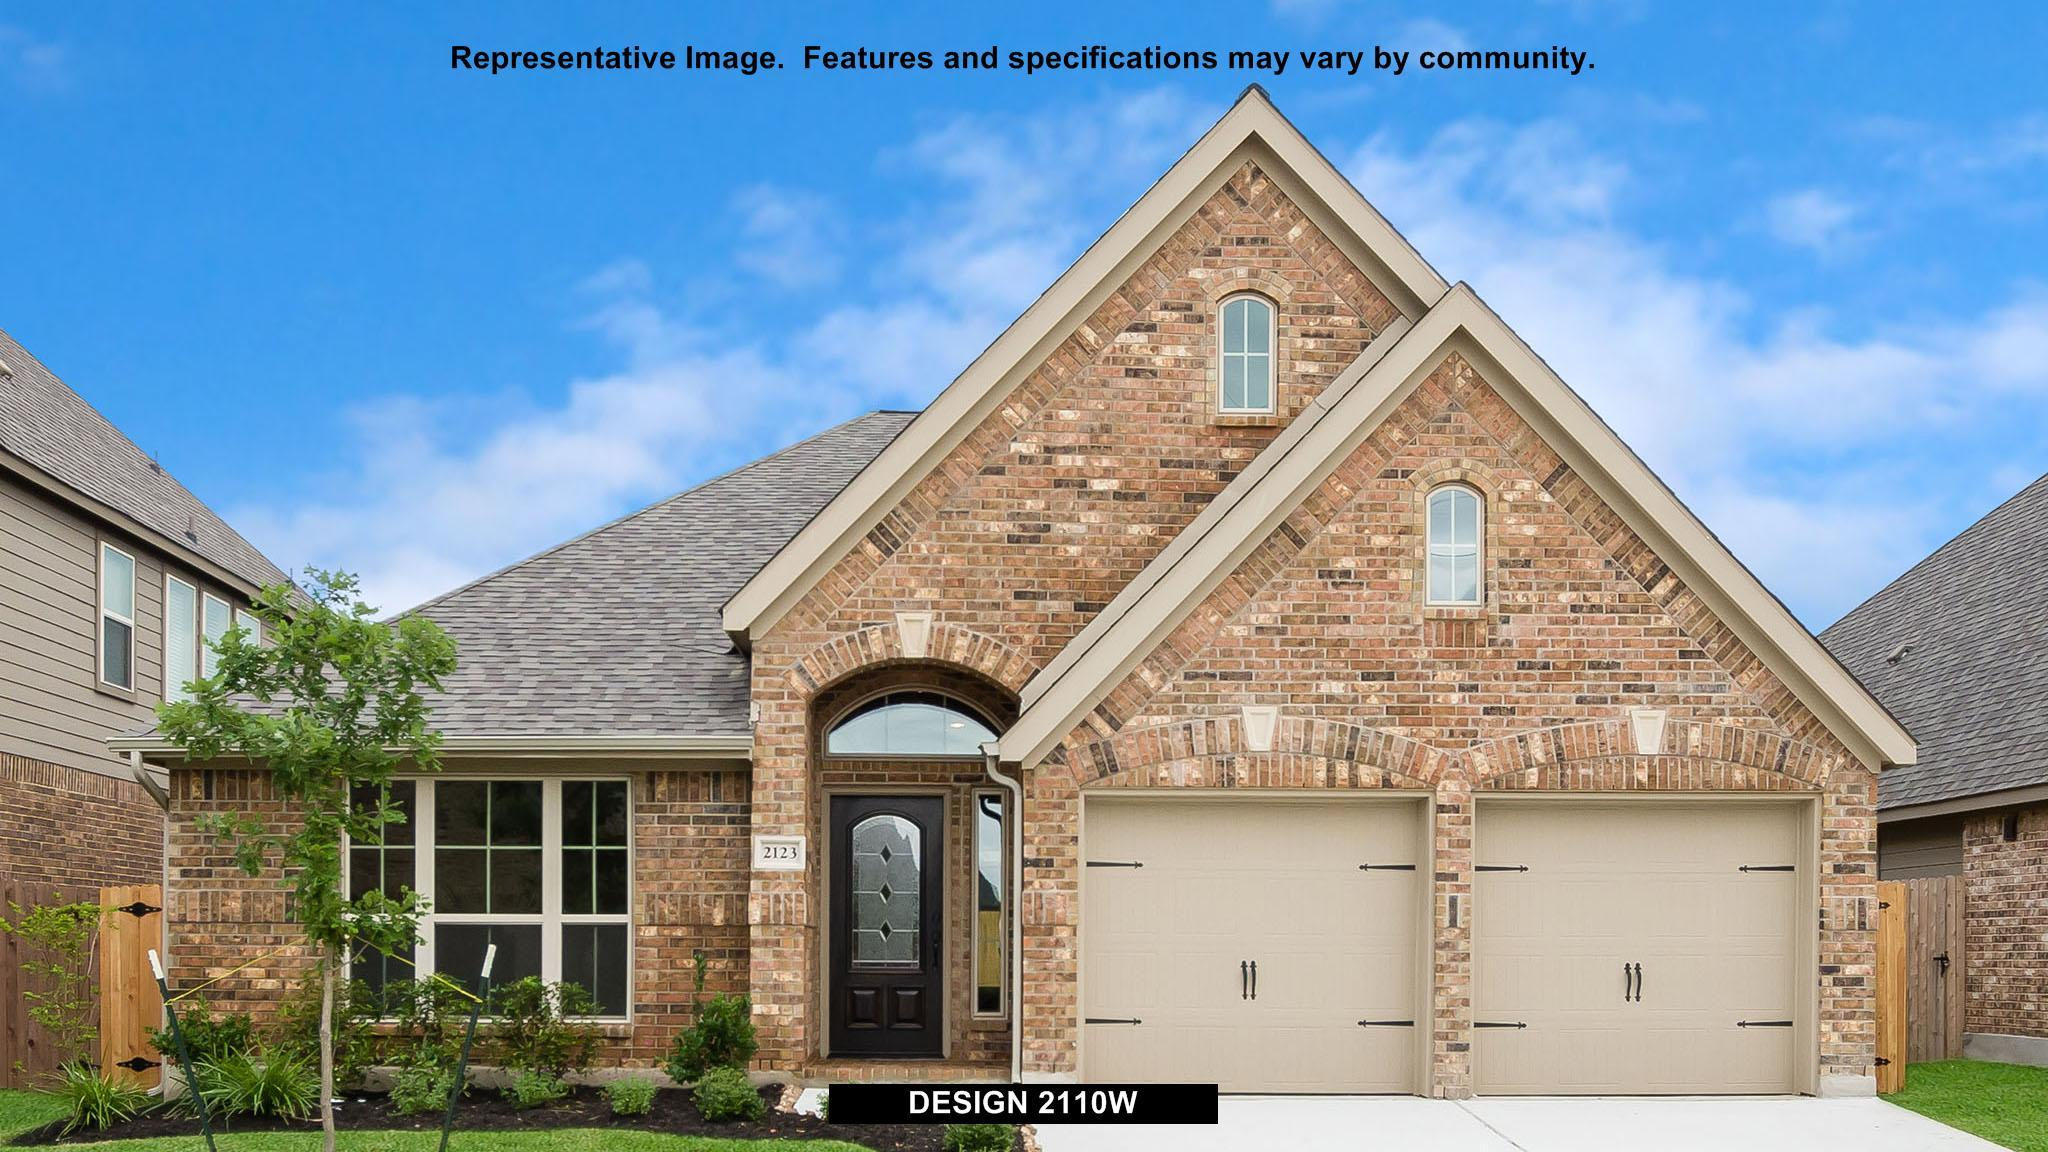 2110W - Firethorne 50': Katy, TX - Perry Homes